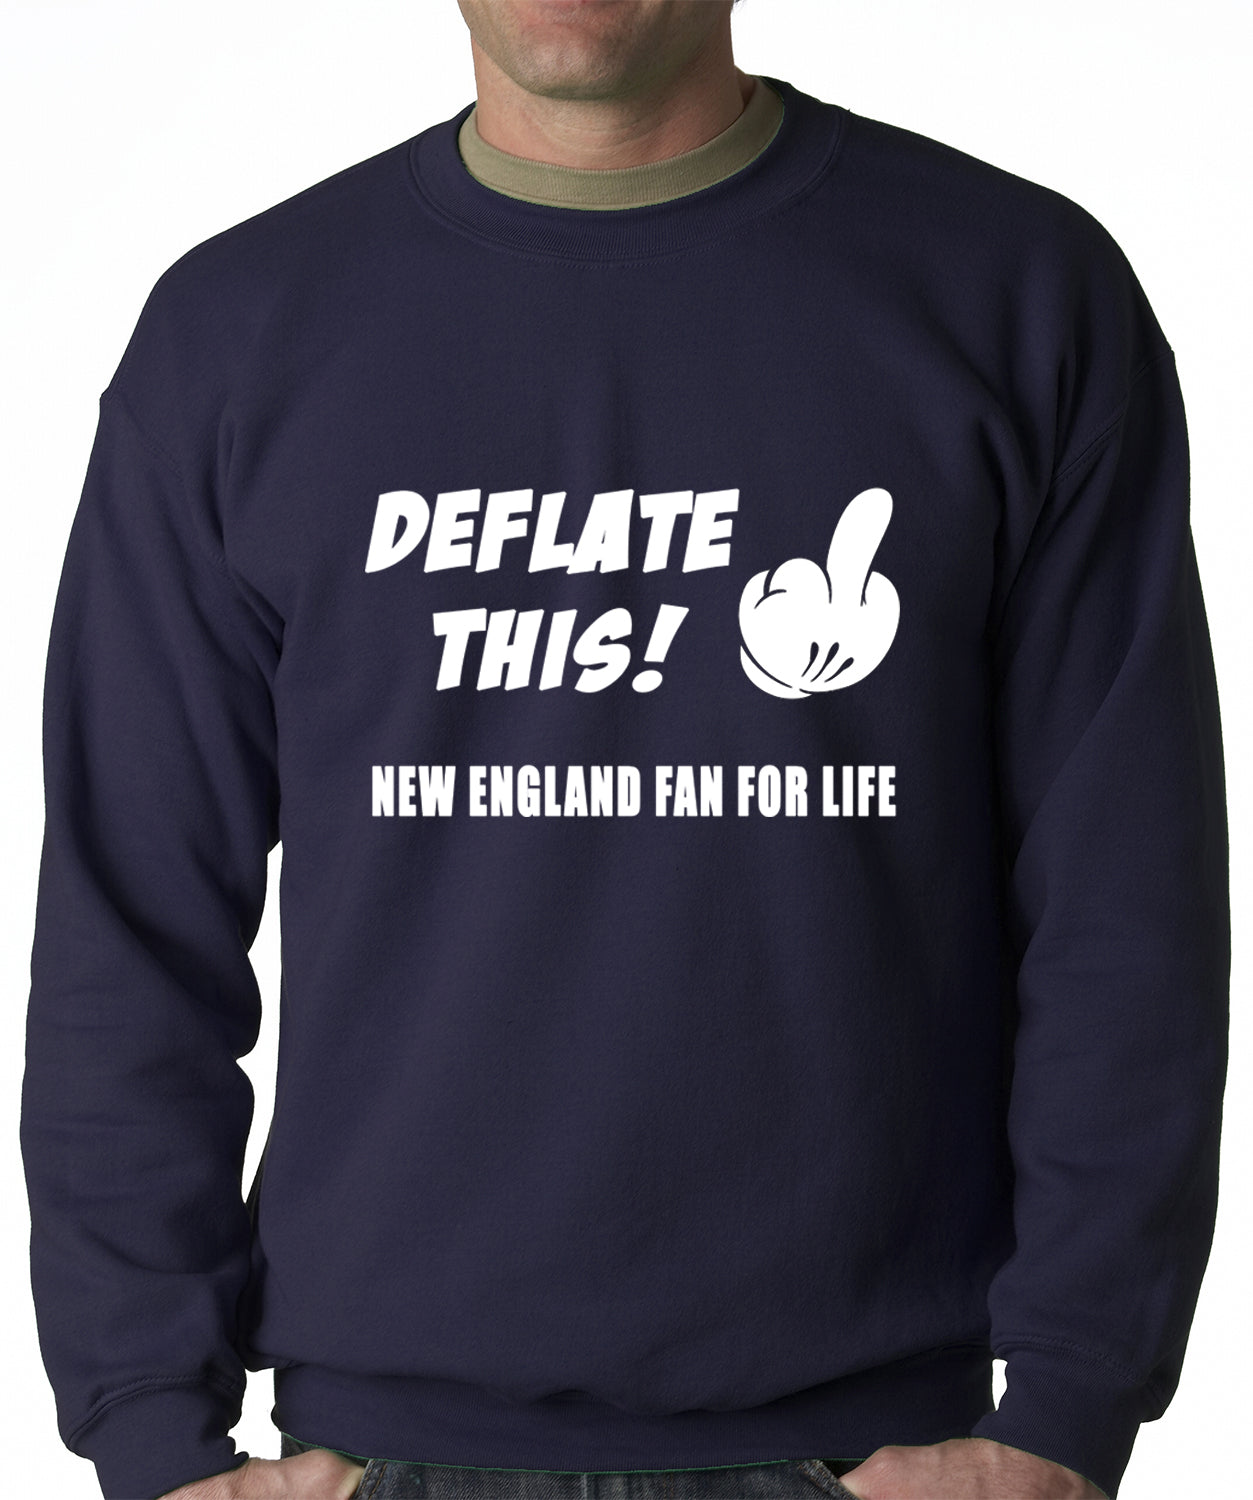 Deflate This! Middle Finger New England Fan For Life Crewneck Sweatshirt